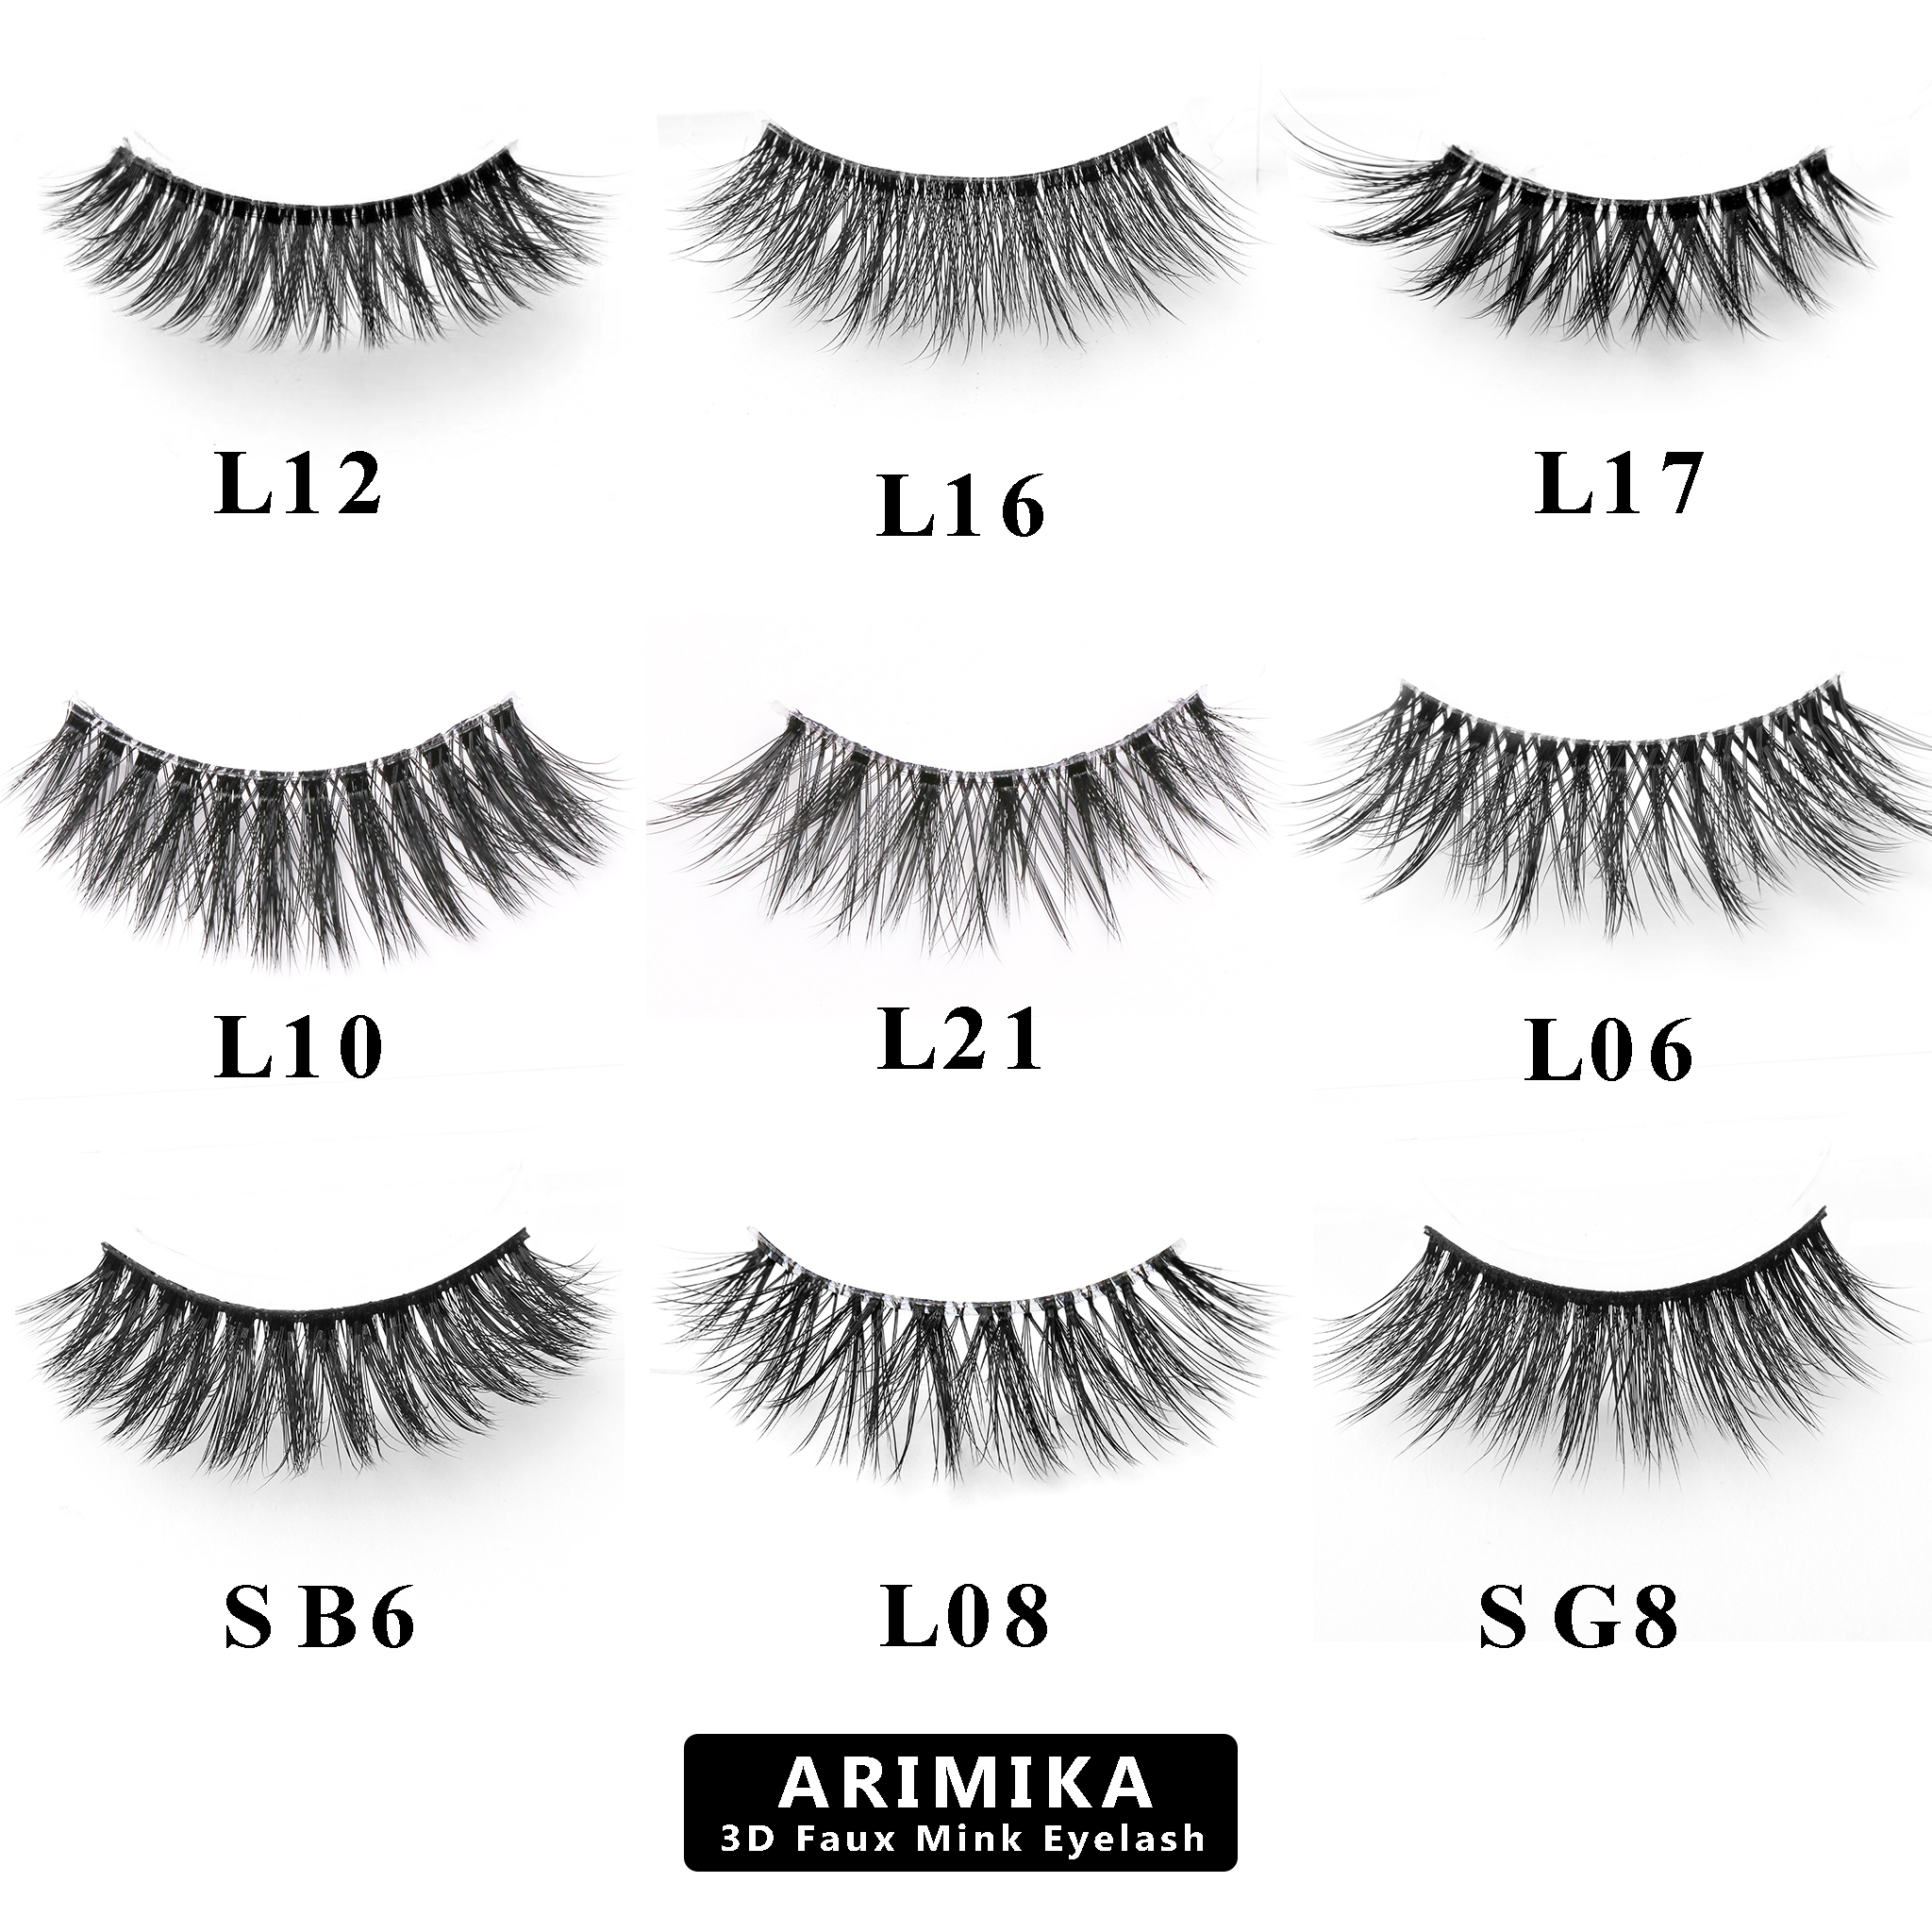 0ff5f8cc689 Wholesale 9 Variety Styles Arimika Handmade 3D Faux Mink False Eyelashes  Extensions-Invisible Clear Band